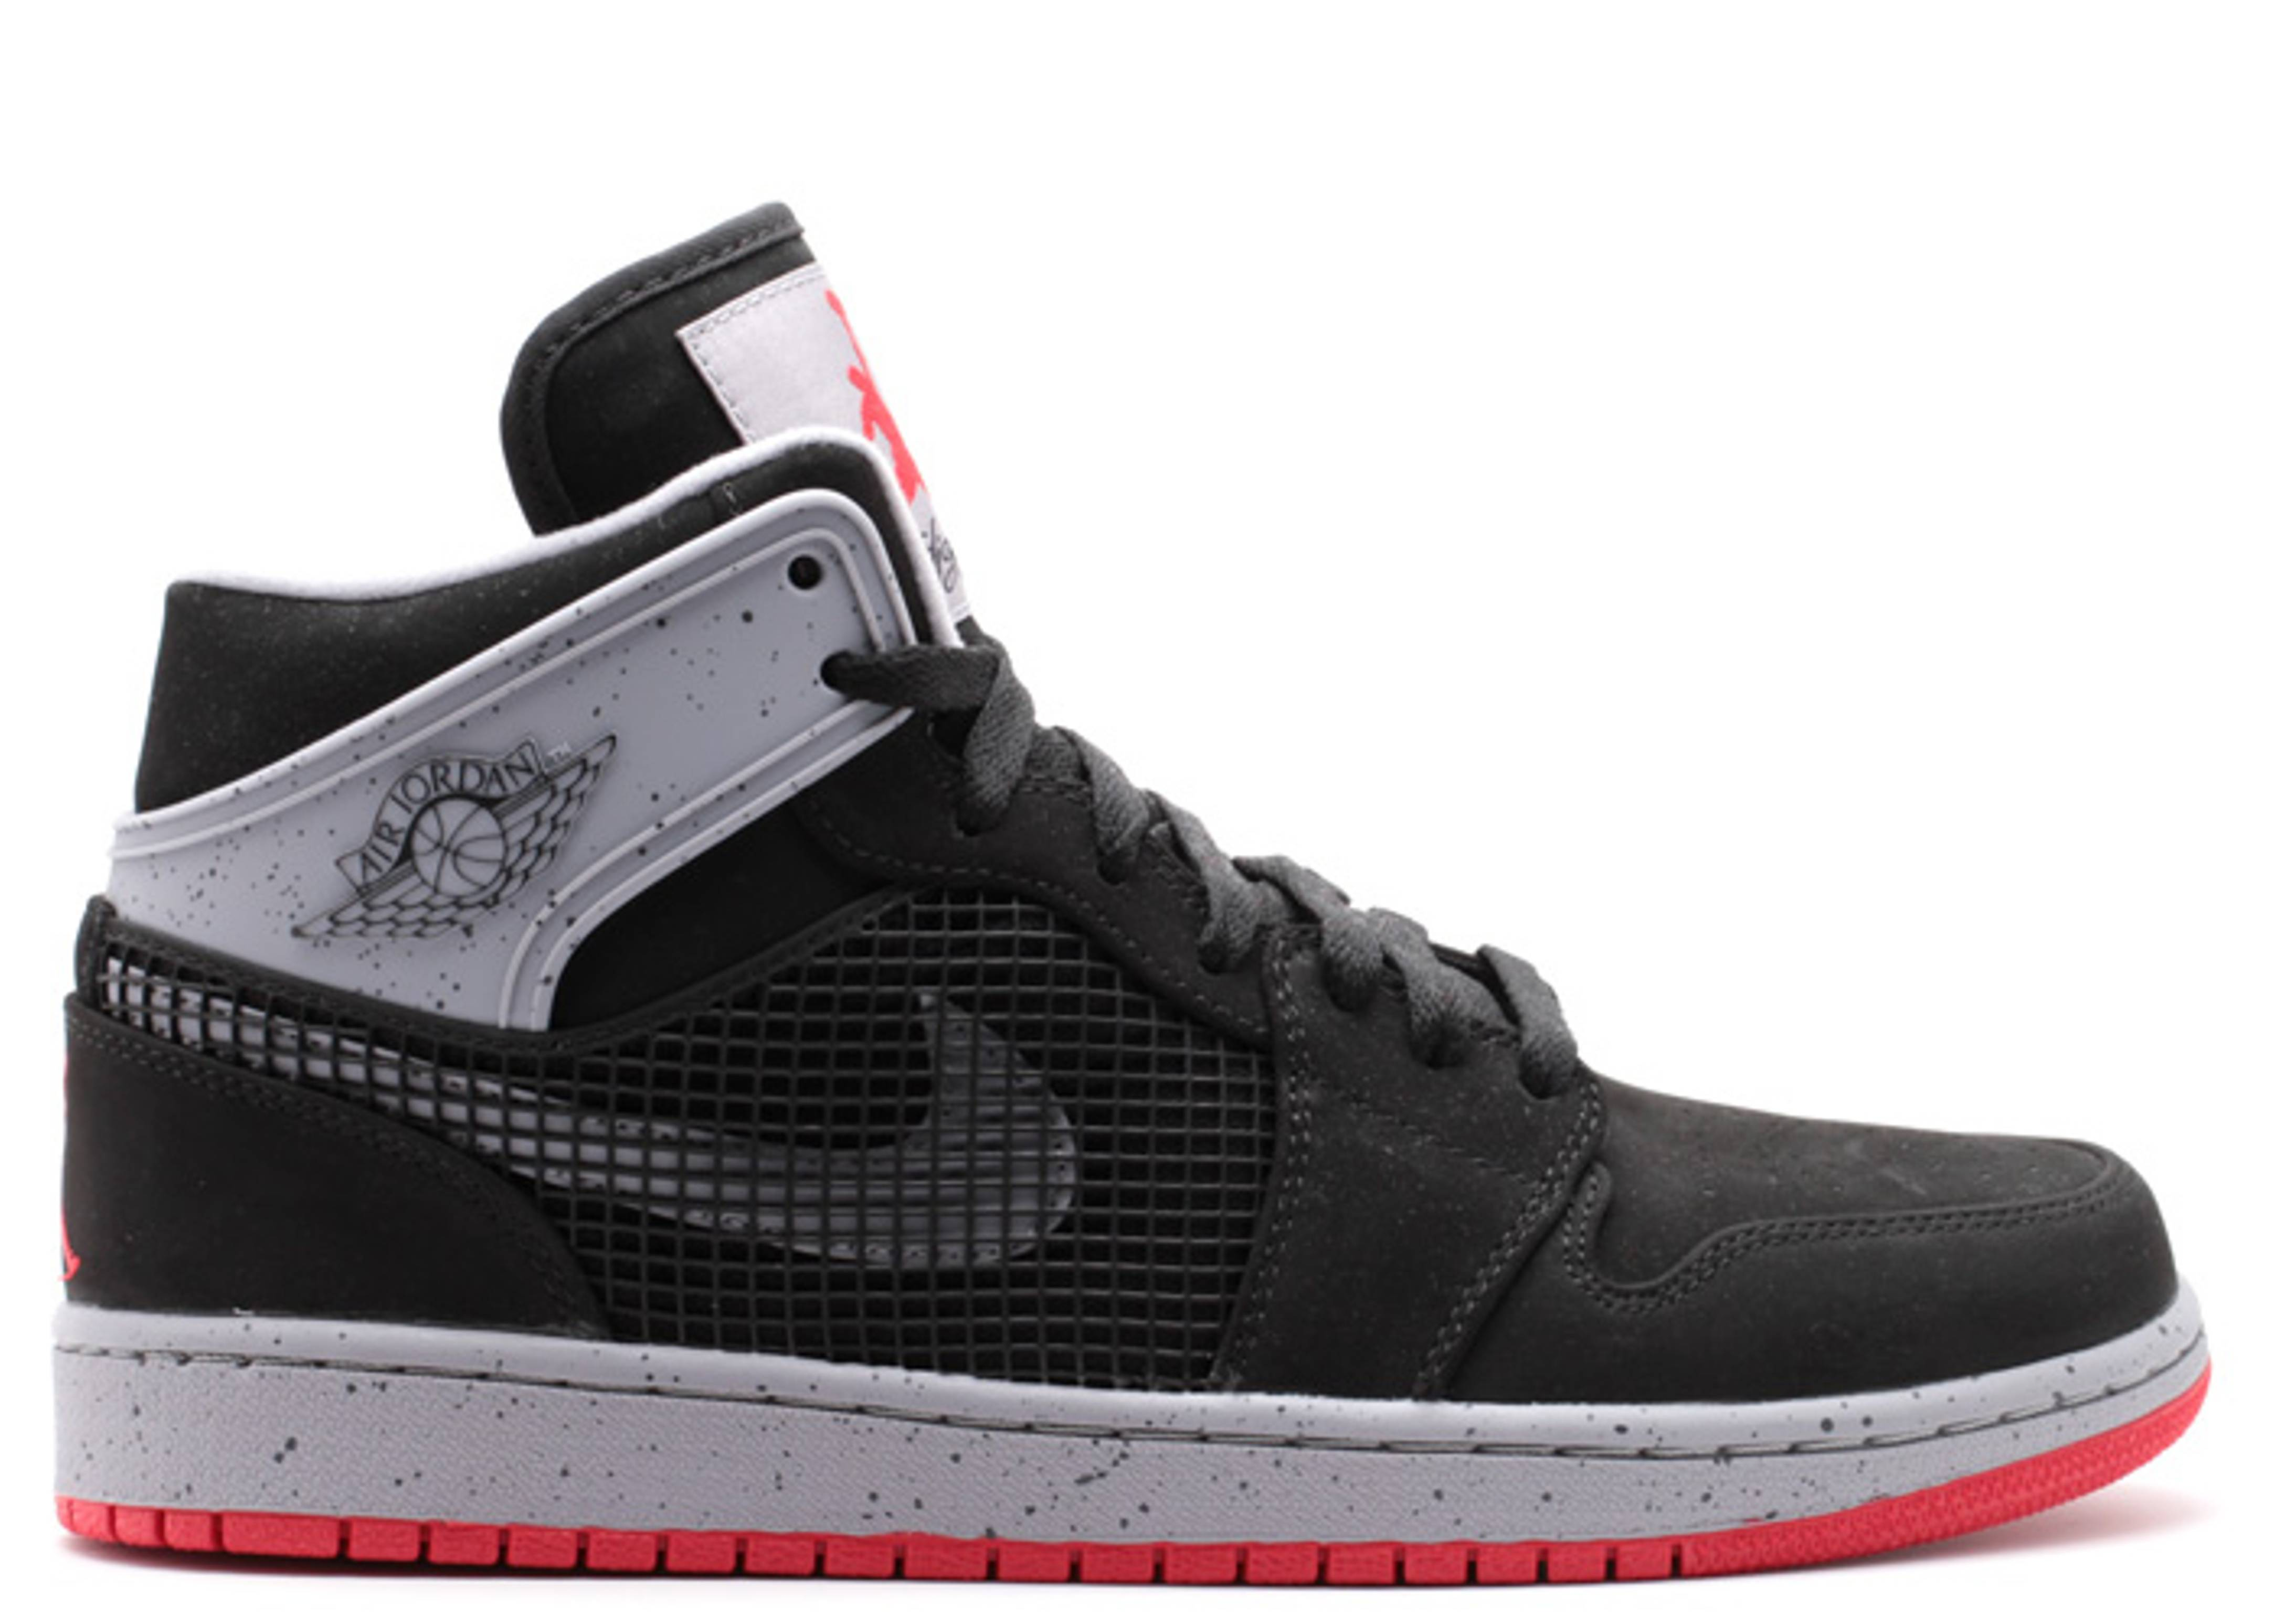 c2058ddcb7b Air Jordan 1 Retro 89 - Air Jordan - 599873 003 - black fire red ...